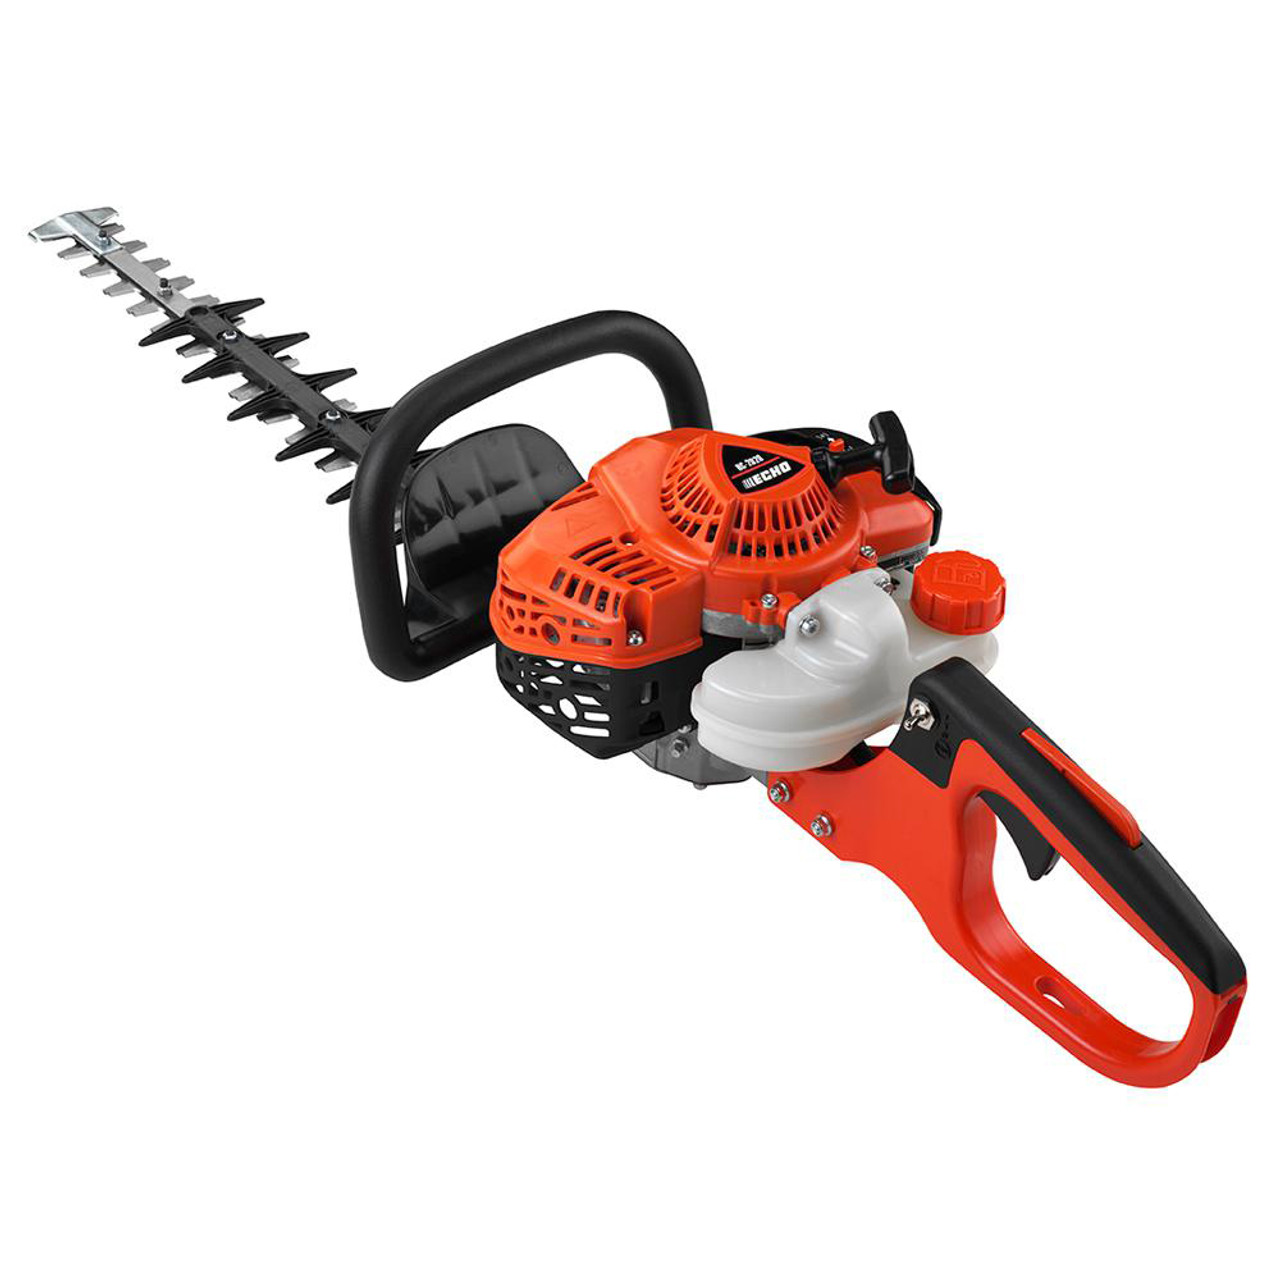 """ECHO HC-2020 21.1cc Hedge Trimmer w/ 20"""" Double-Sided Blades Image 3"""